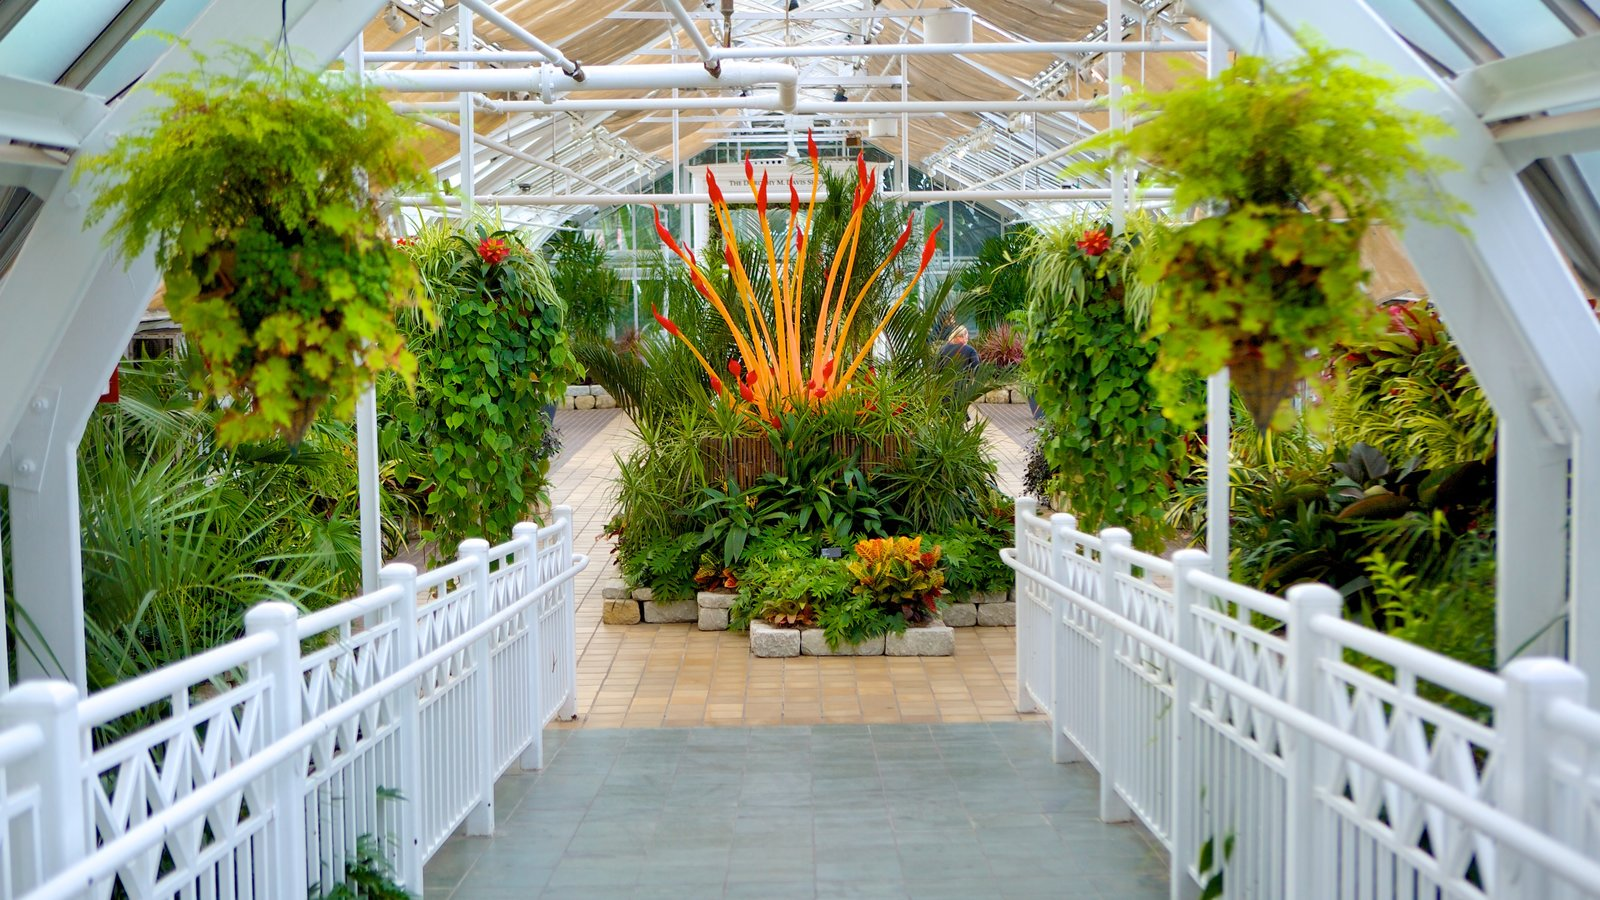 Franklin Park Conservatory And Botanical Gardens Showing A Garden, Flowers  And Interior Views